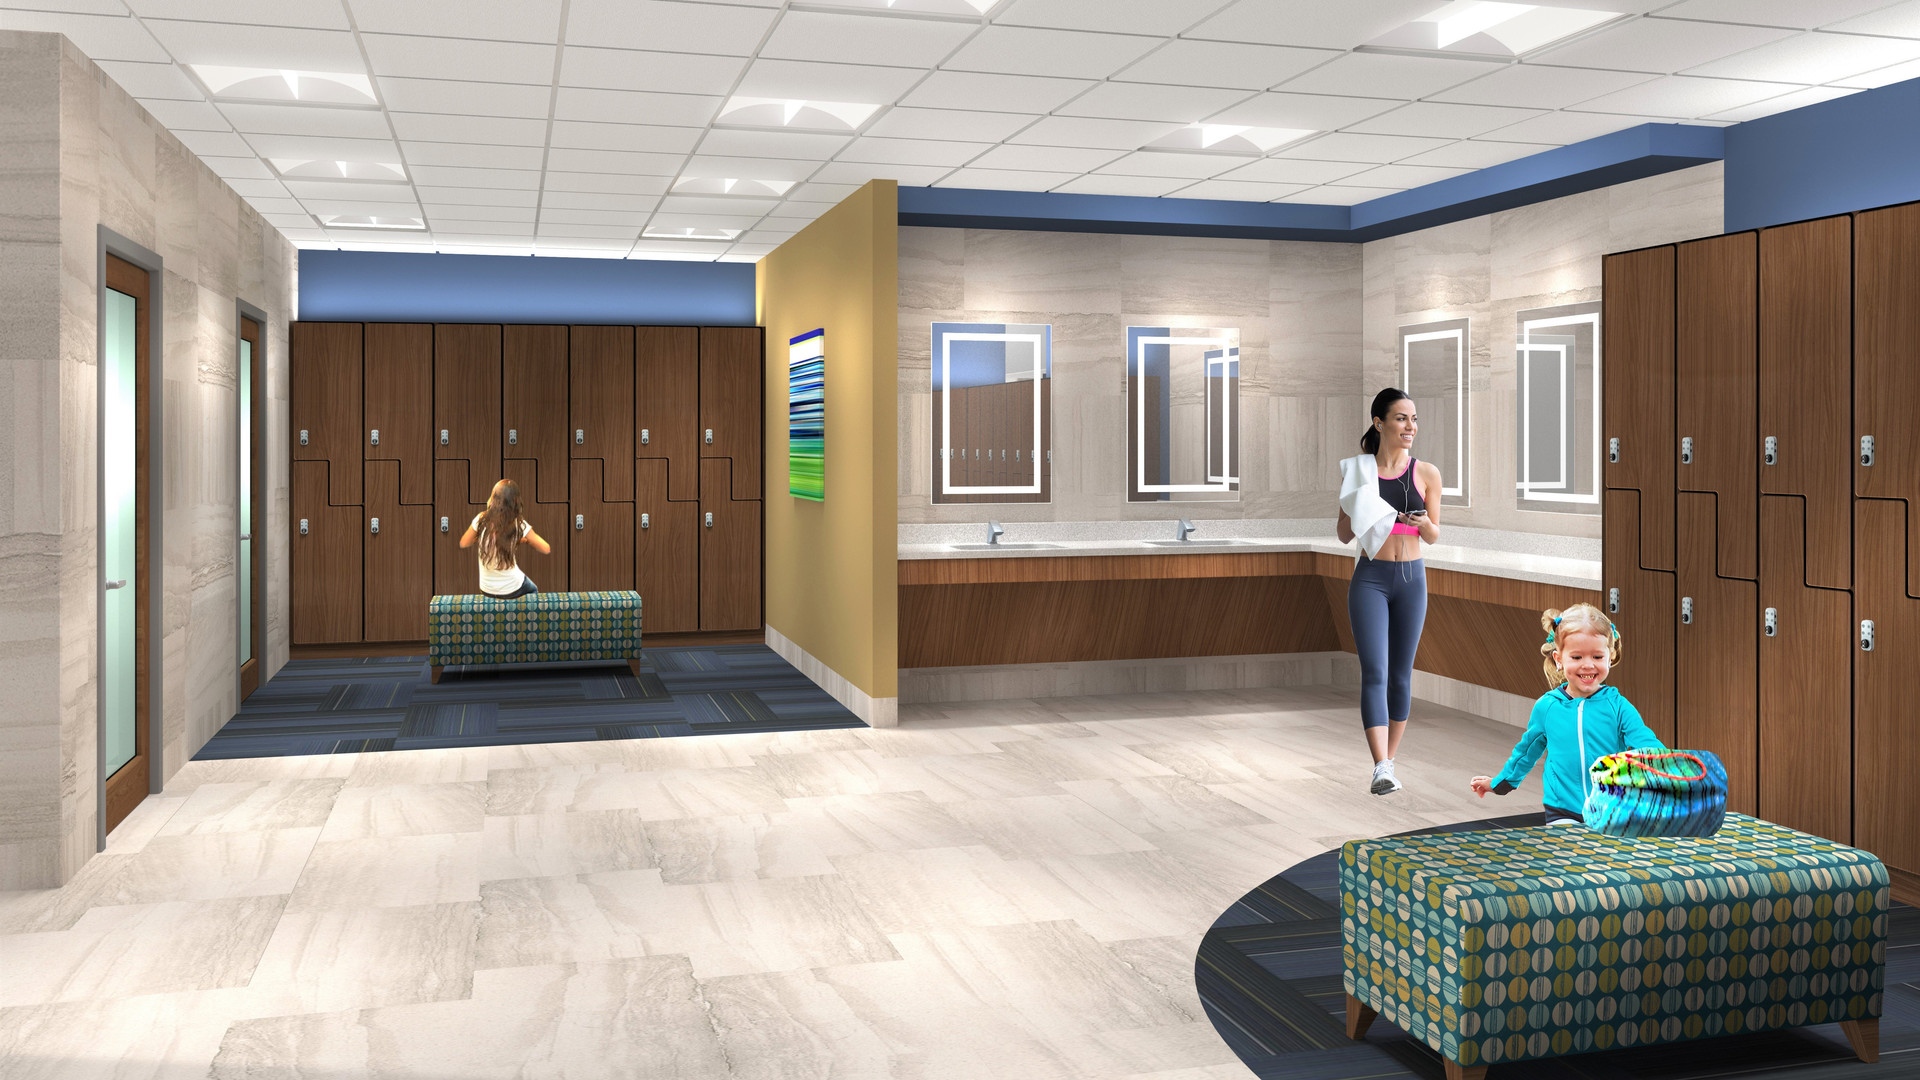 10-Rendering - Family locker room.jpg